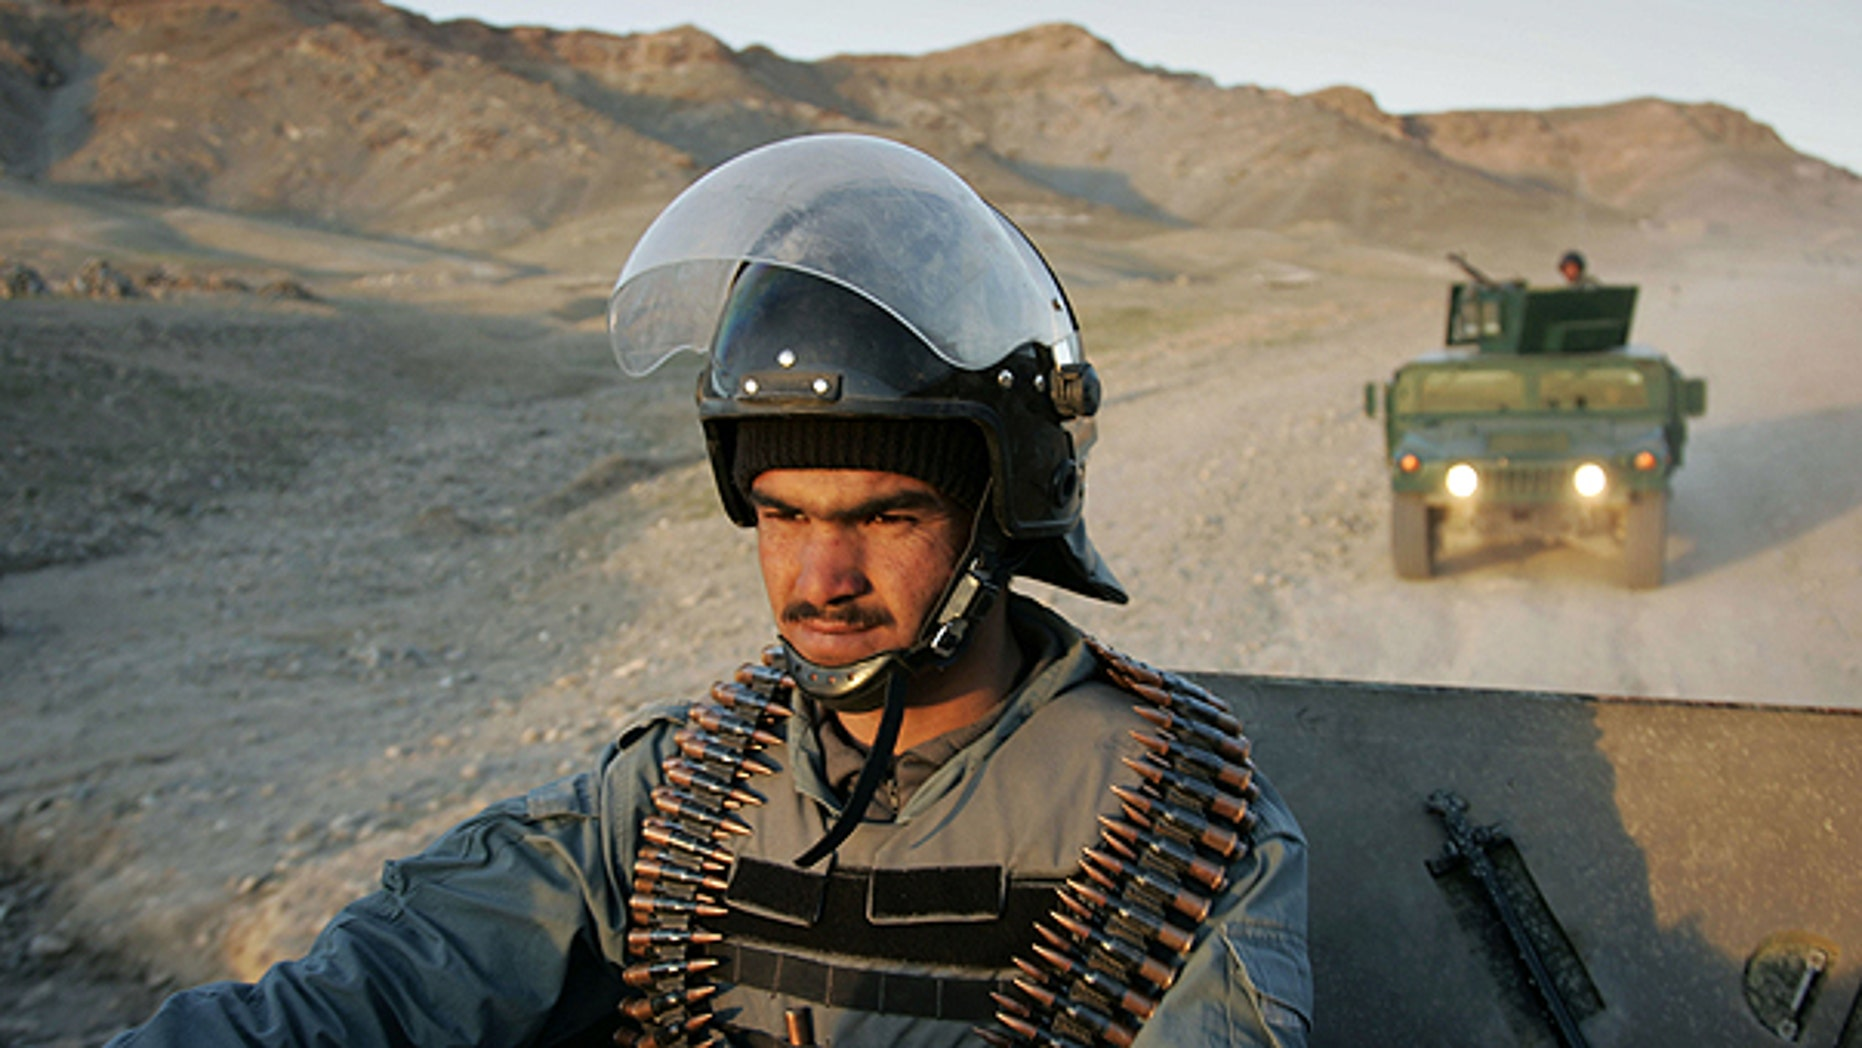 March 19: An Afghan policeman controls the area during a patrol in Guzara district, Herat province east of Kabul, Afghanistan.